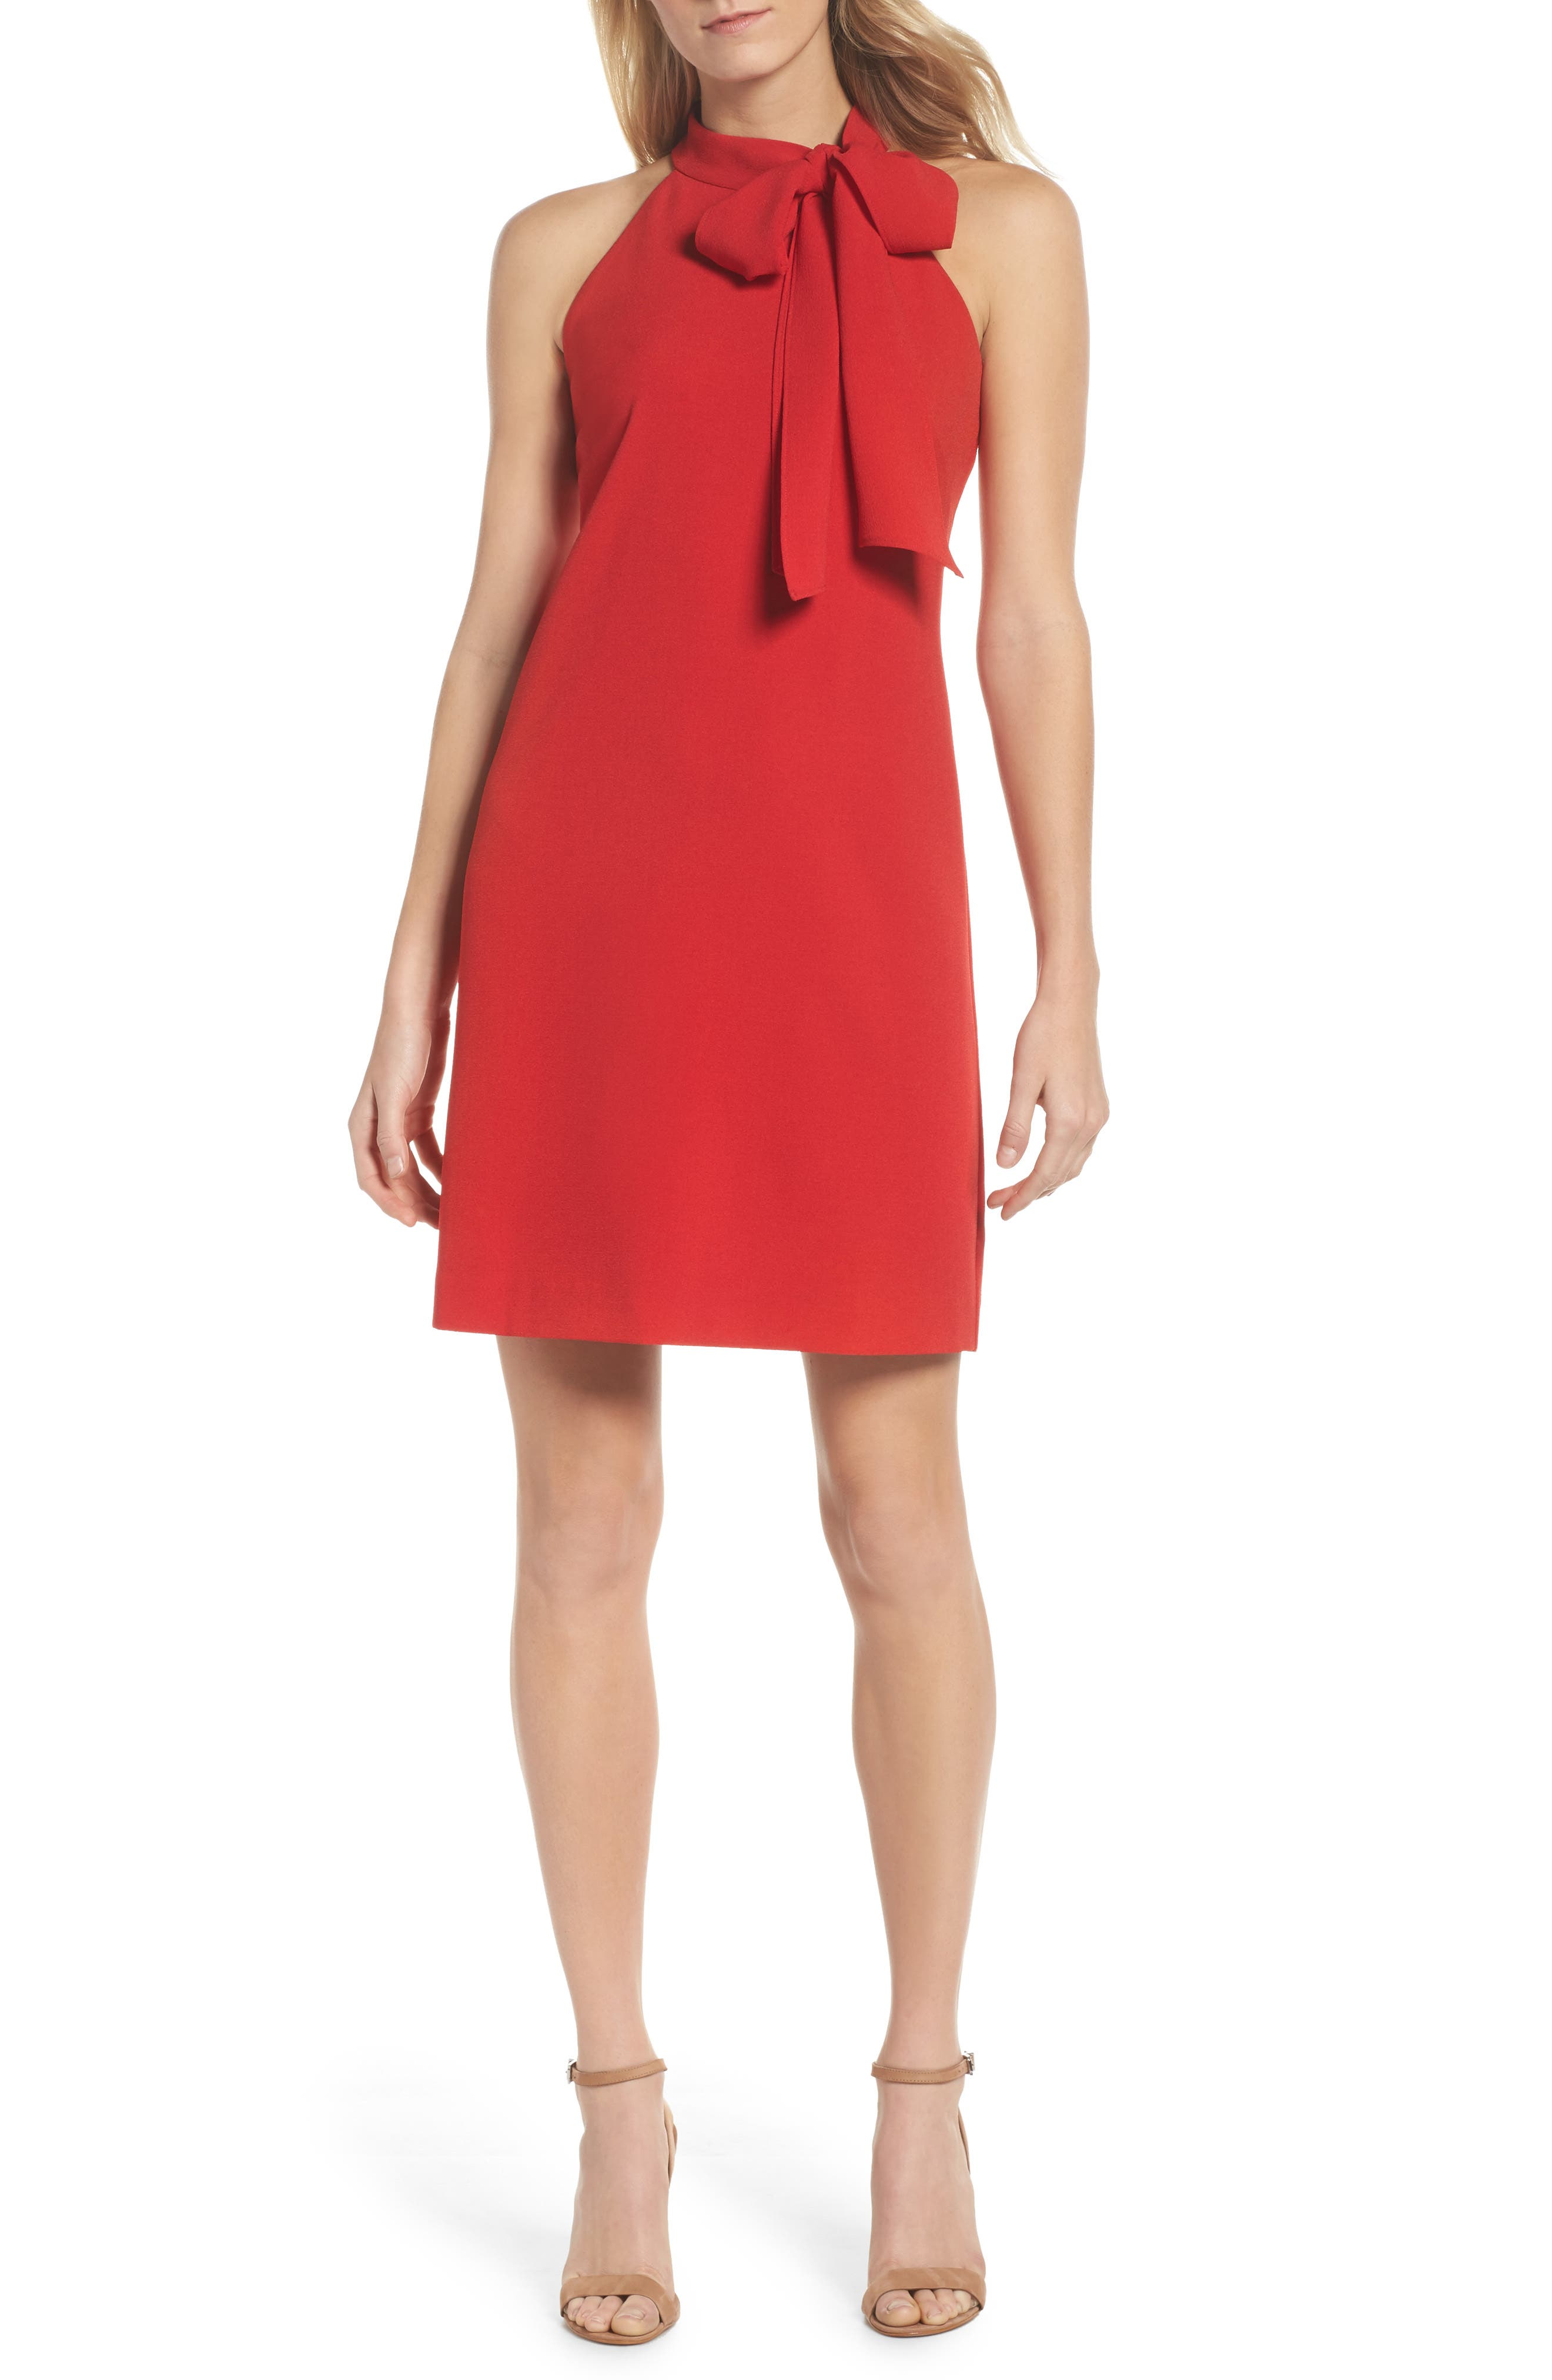 Vince Camuto Halter Tie Neck A-Line Dress, Red